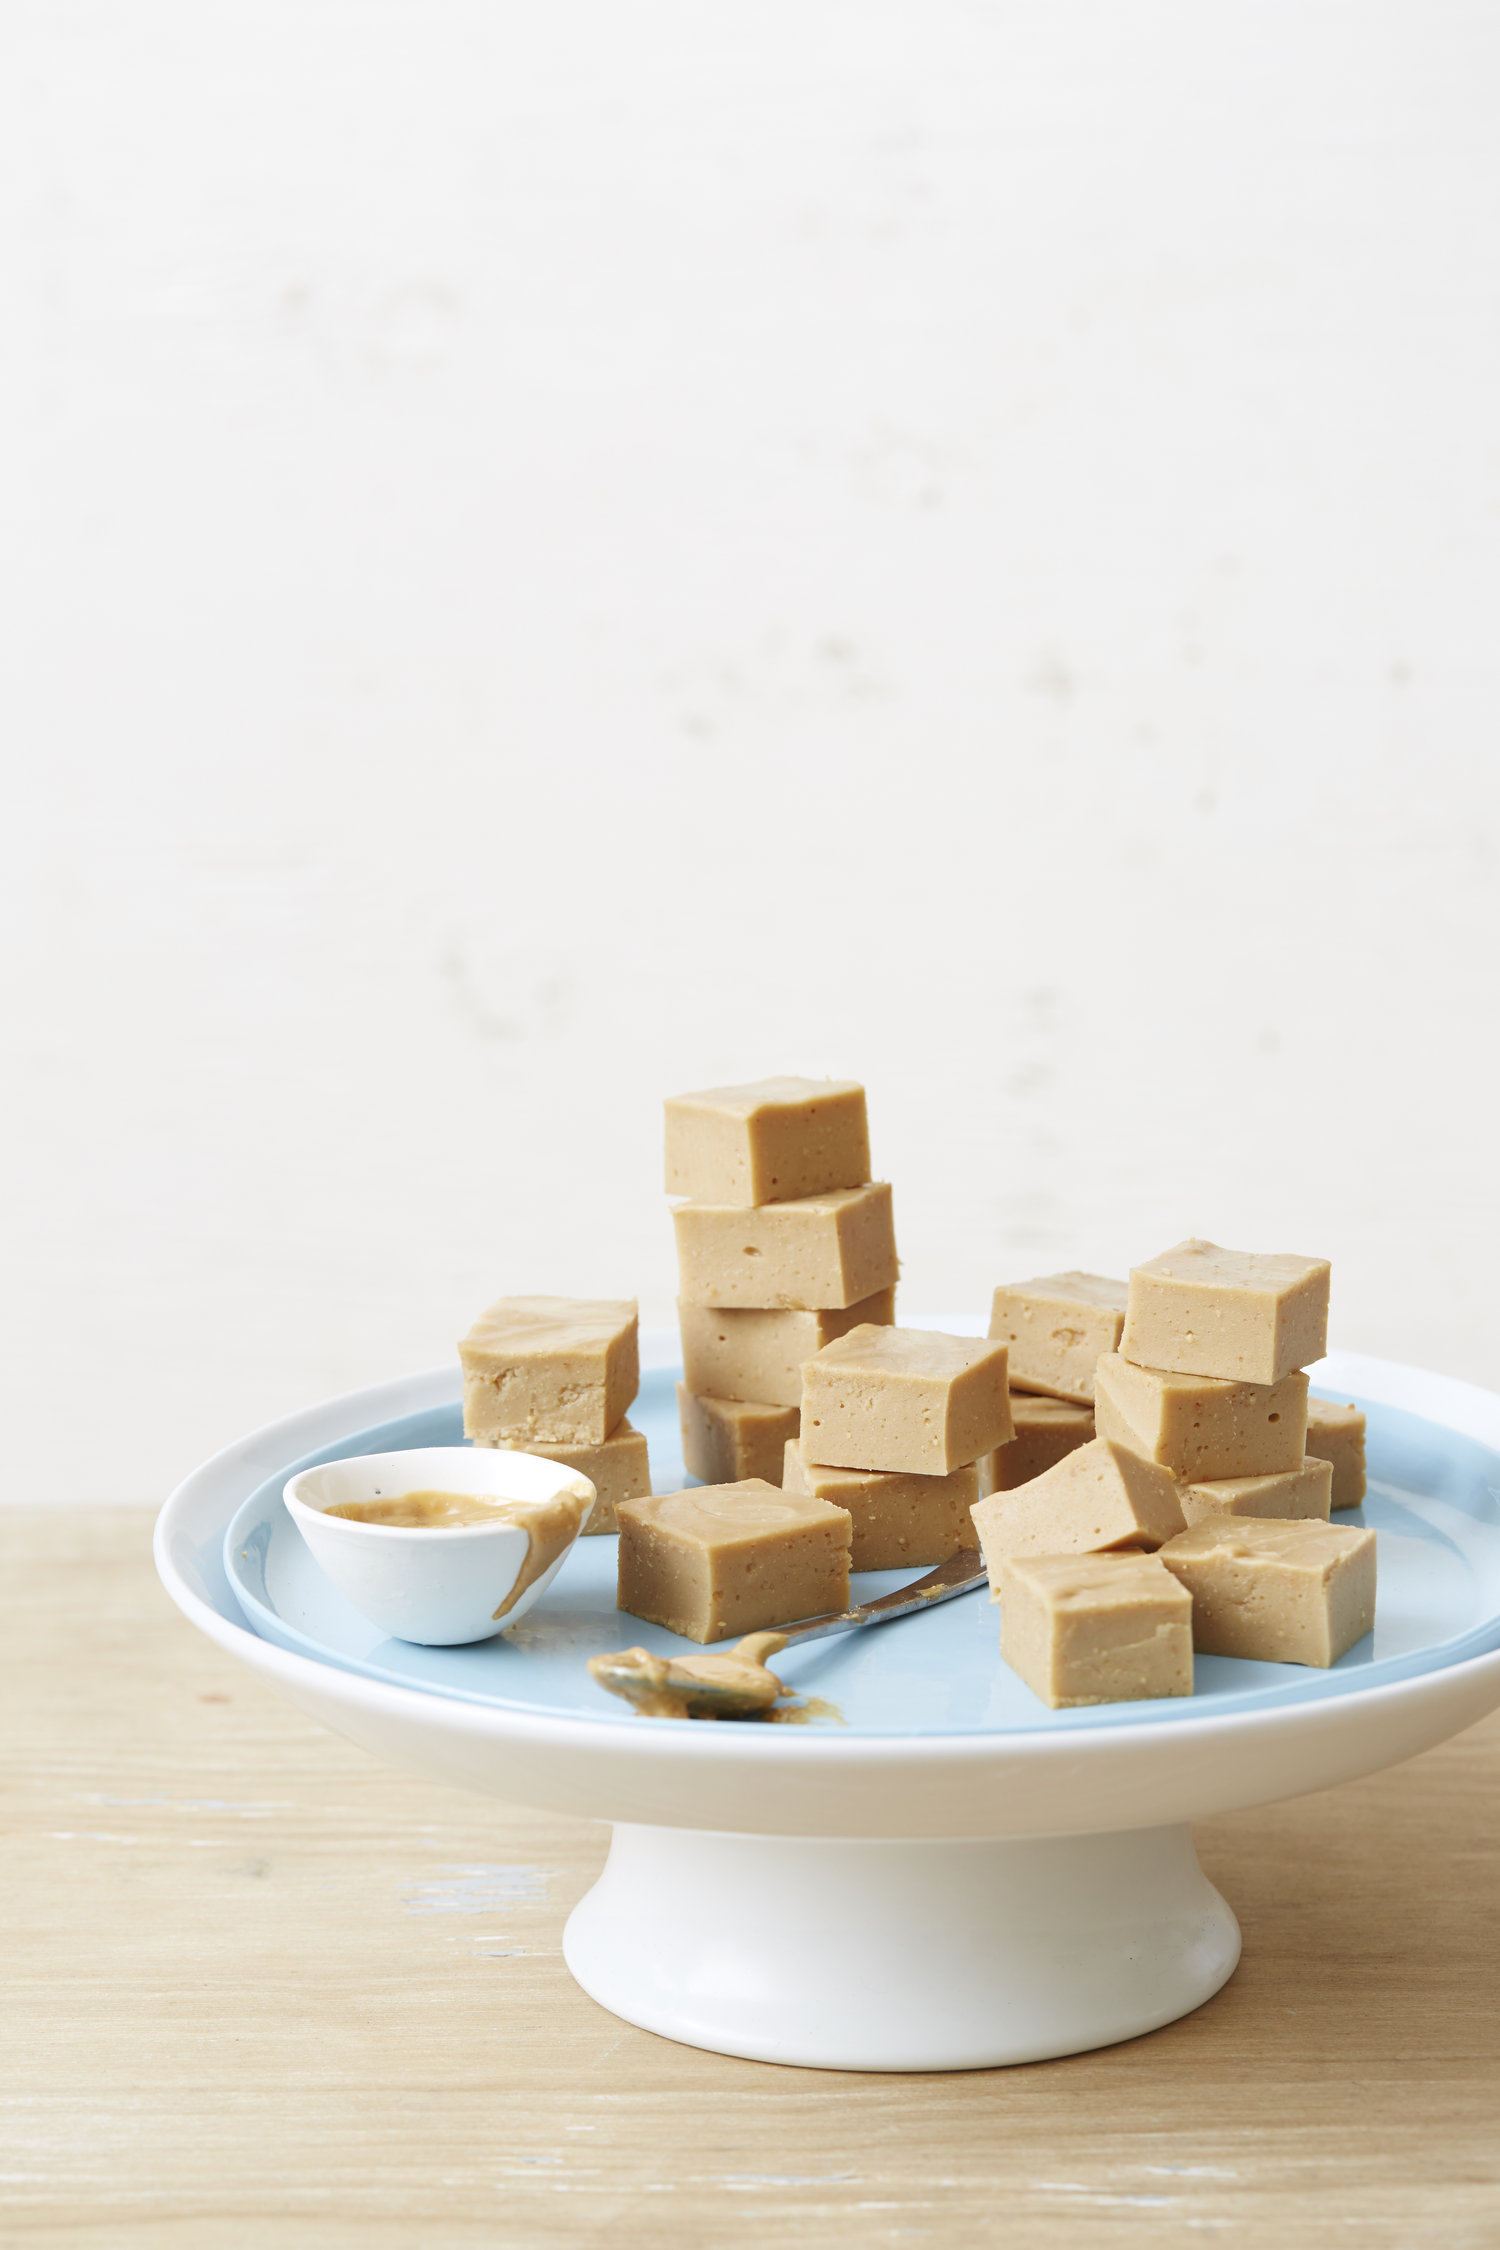 Supercharged Peanut Butter Fudge. I Quit Sugar. Photographer: Ella Martin. Stylist: Katie Graham.